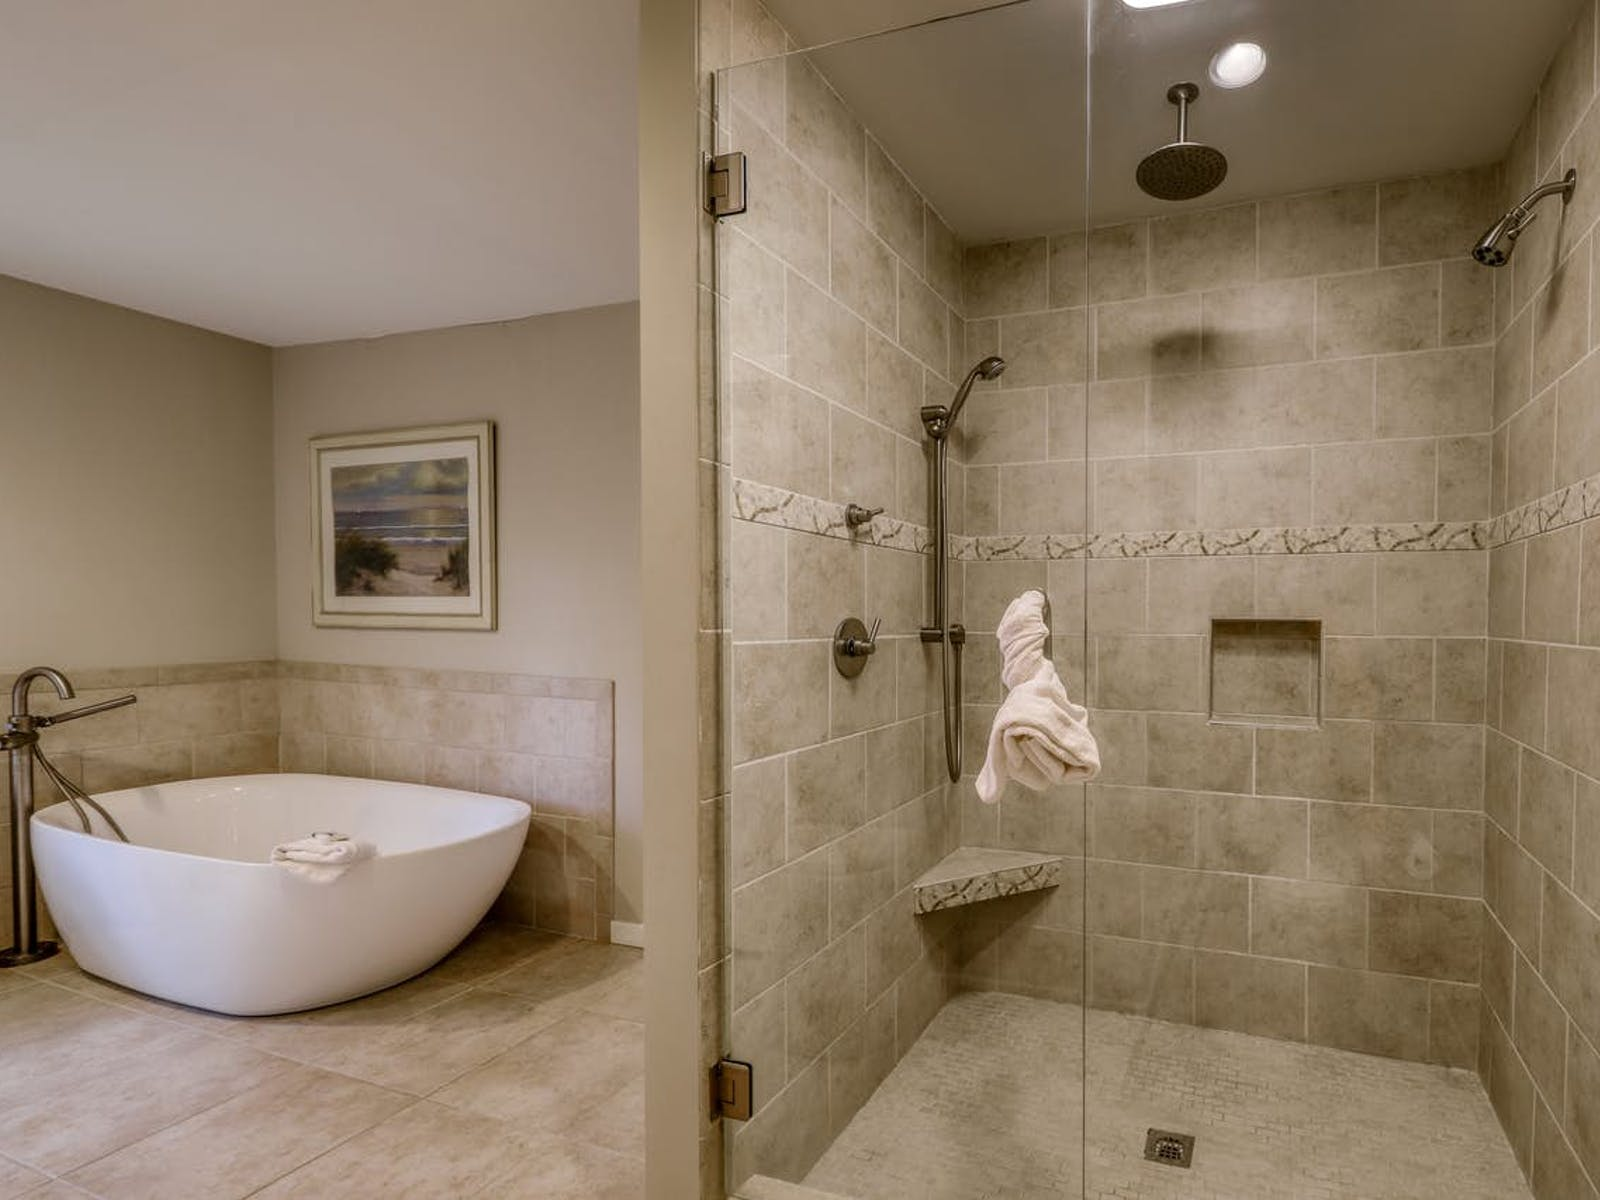 neutral-hued bathroom features a rare square bathtub next to a dual-head shower